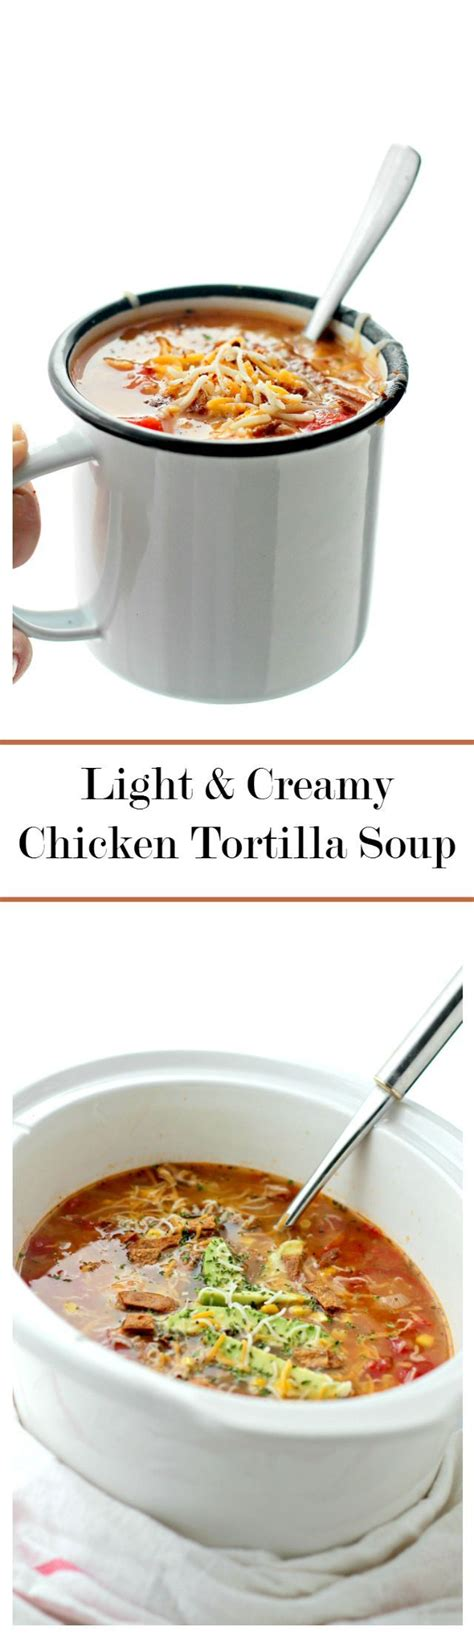 cooking light chicken tortilla soup light creamy chicken tortilla soup recipe creamy